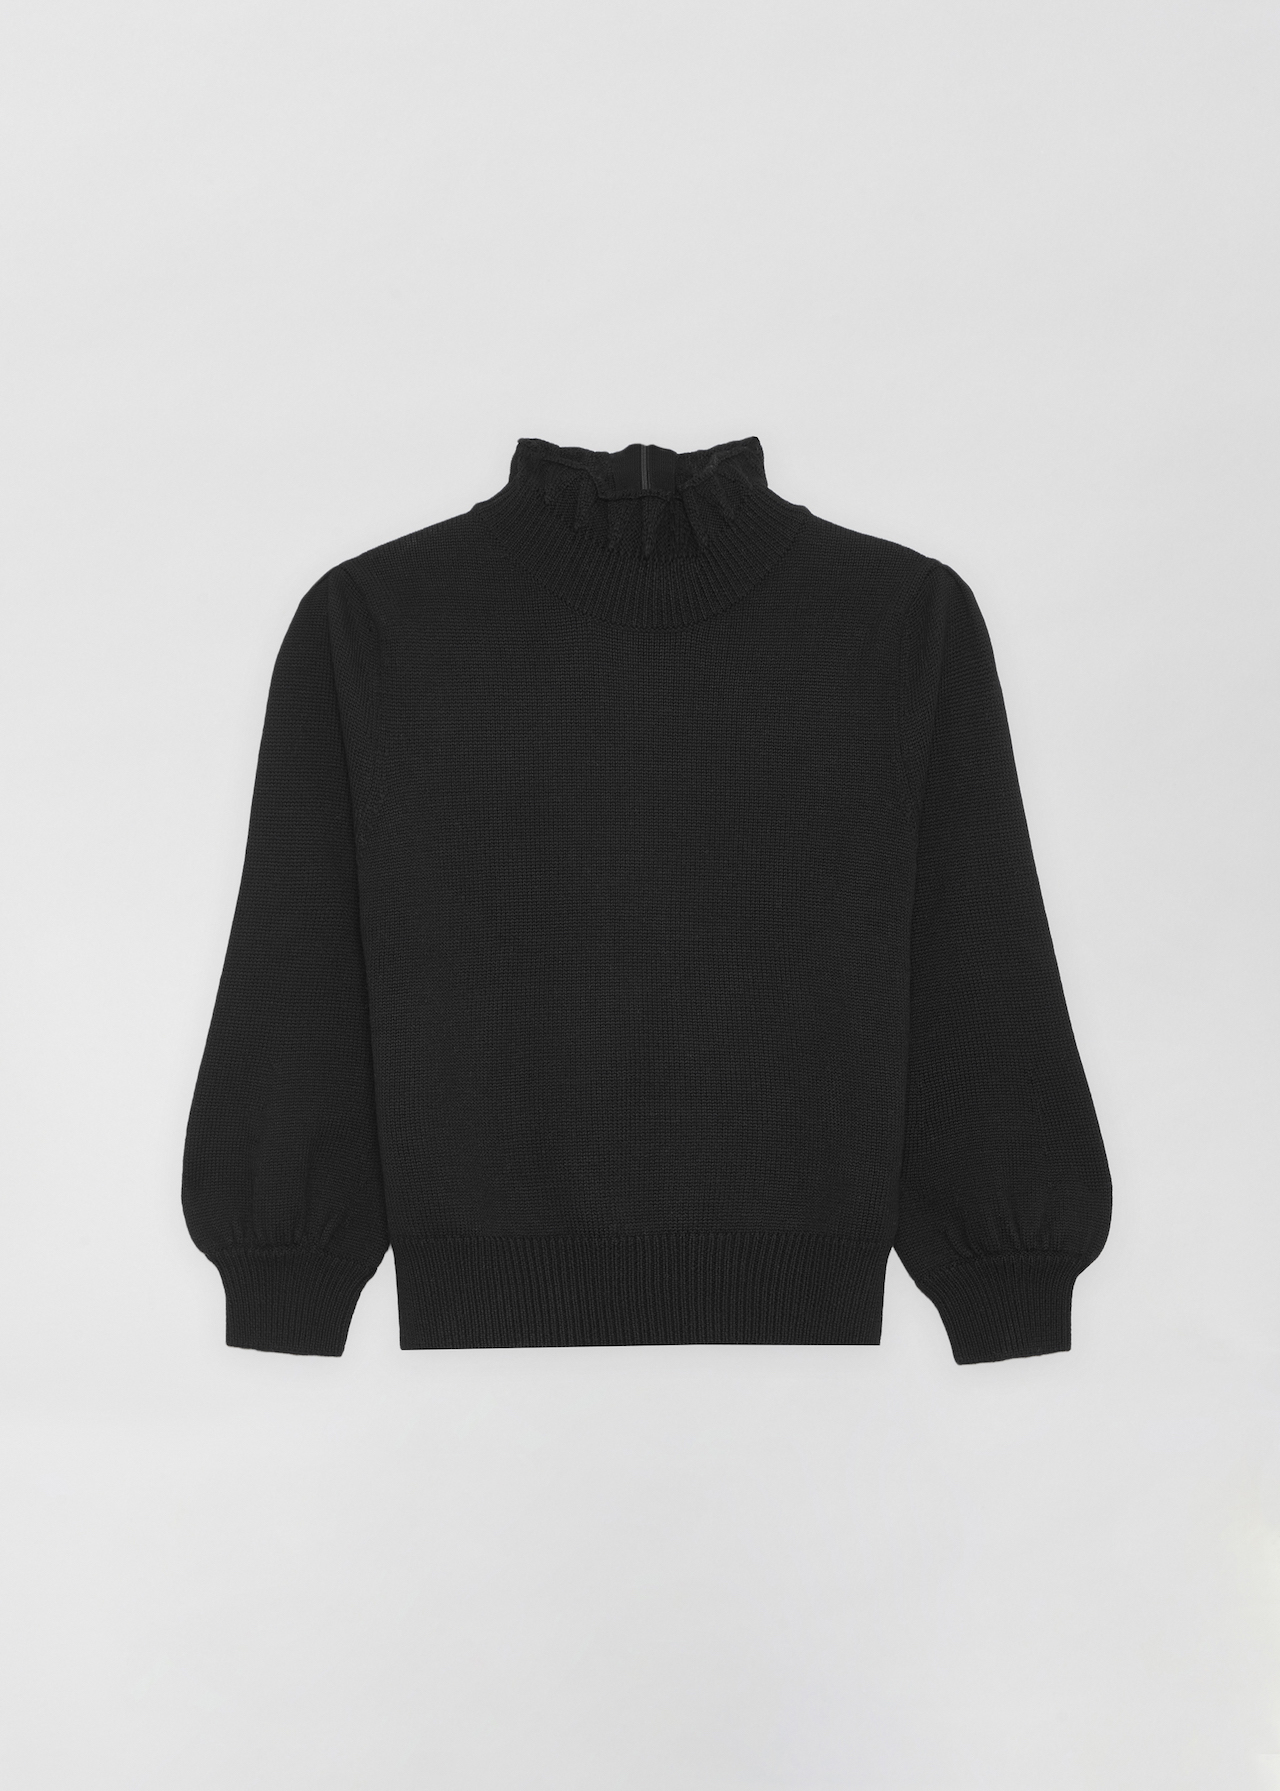 Ruffled Merino Wool Turtleneck - Navy in Black by Co Collections